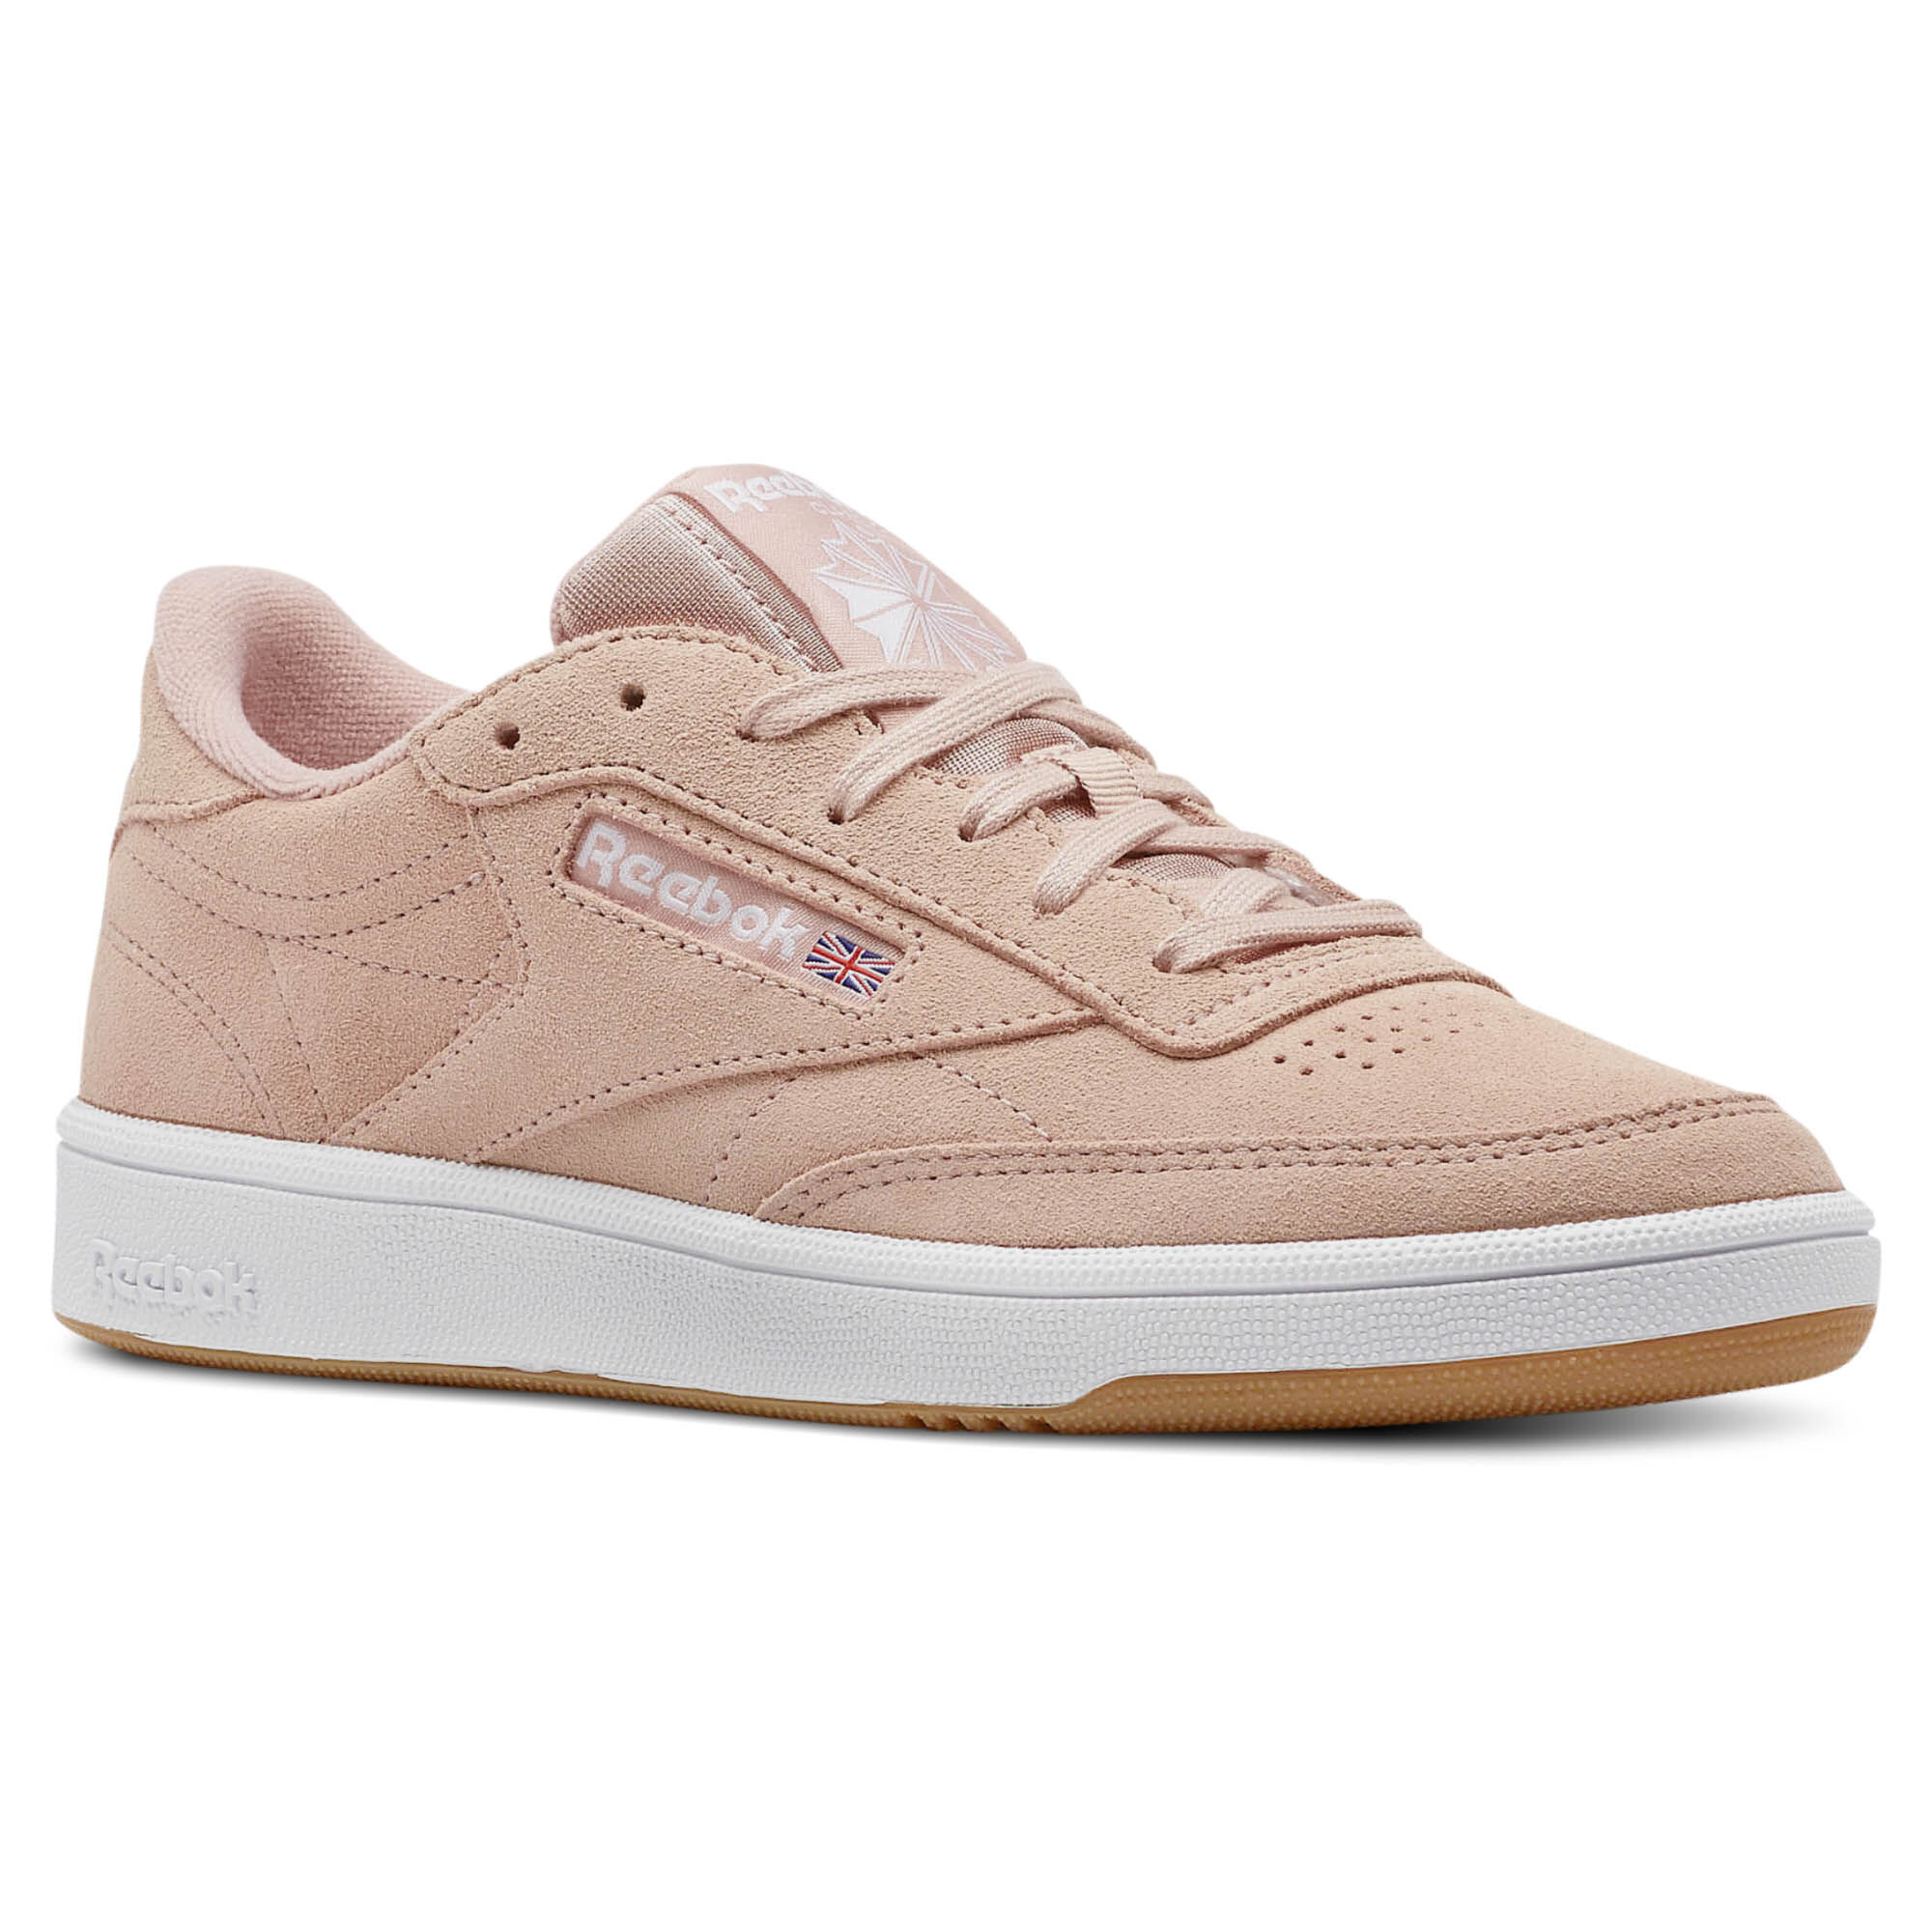 Schuhe Reebok - Club C 85 CN5202 Peach Twist/Gum/White